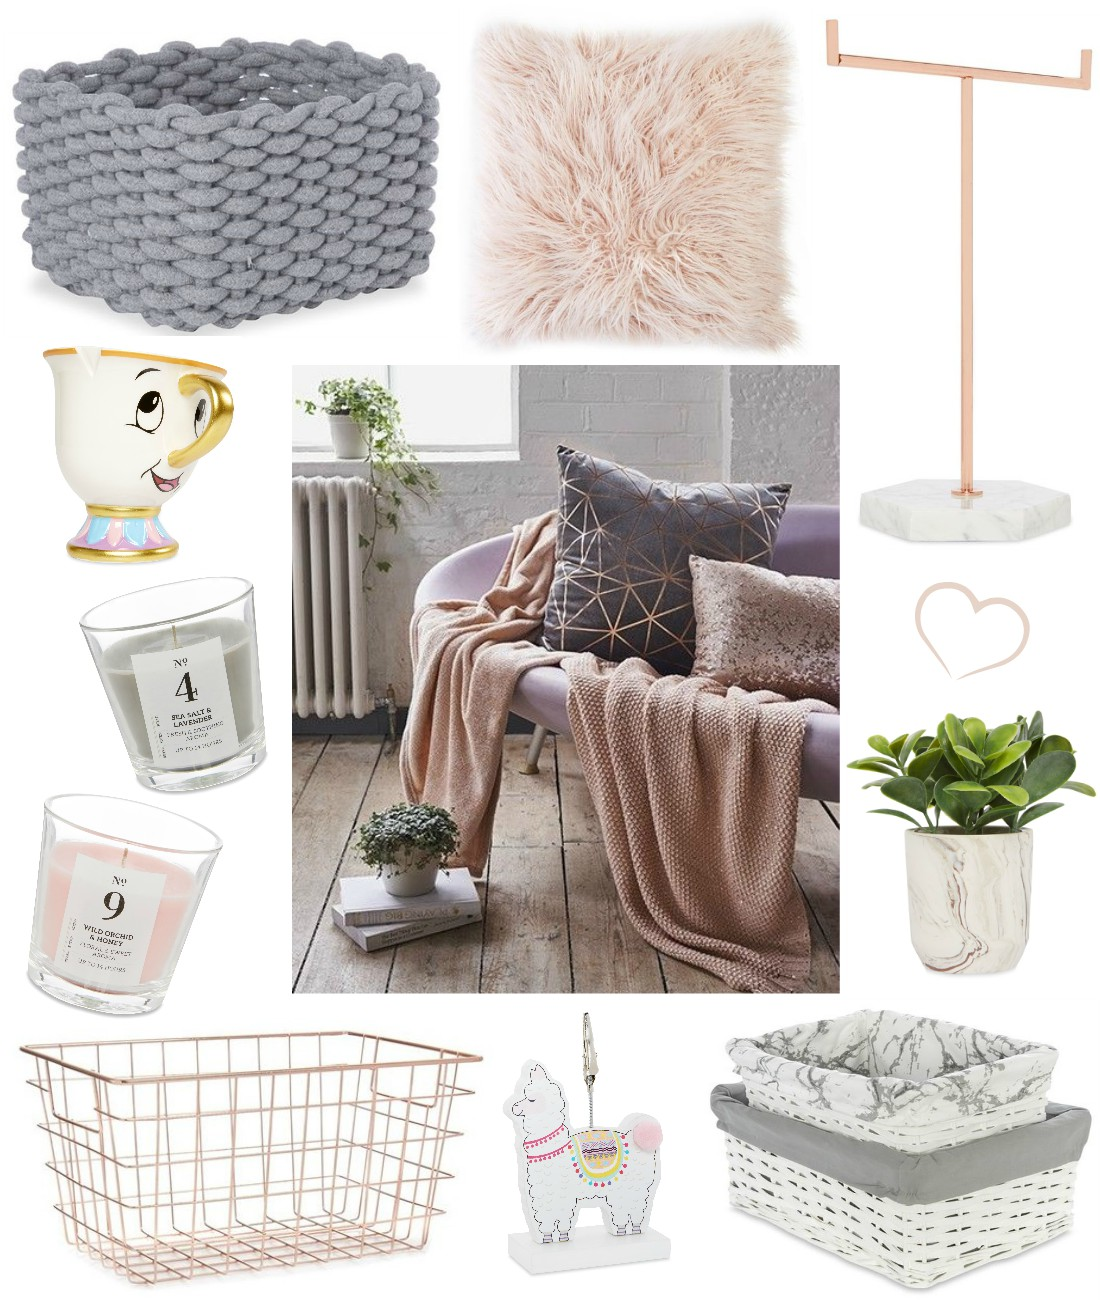 AW17 Primark Homeware: My favourite Pieces